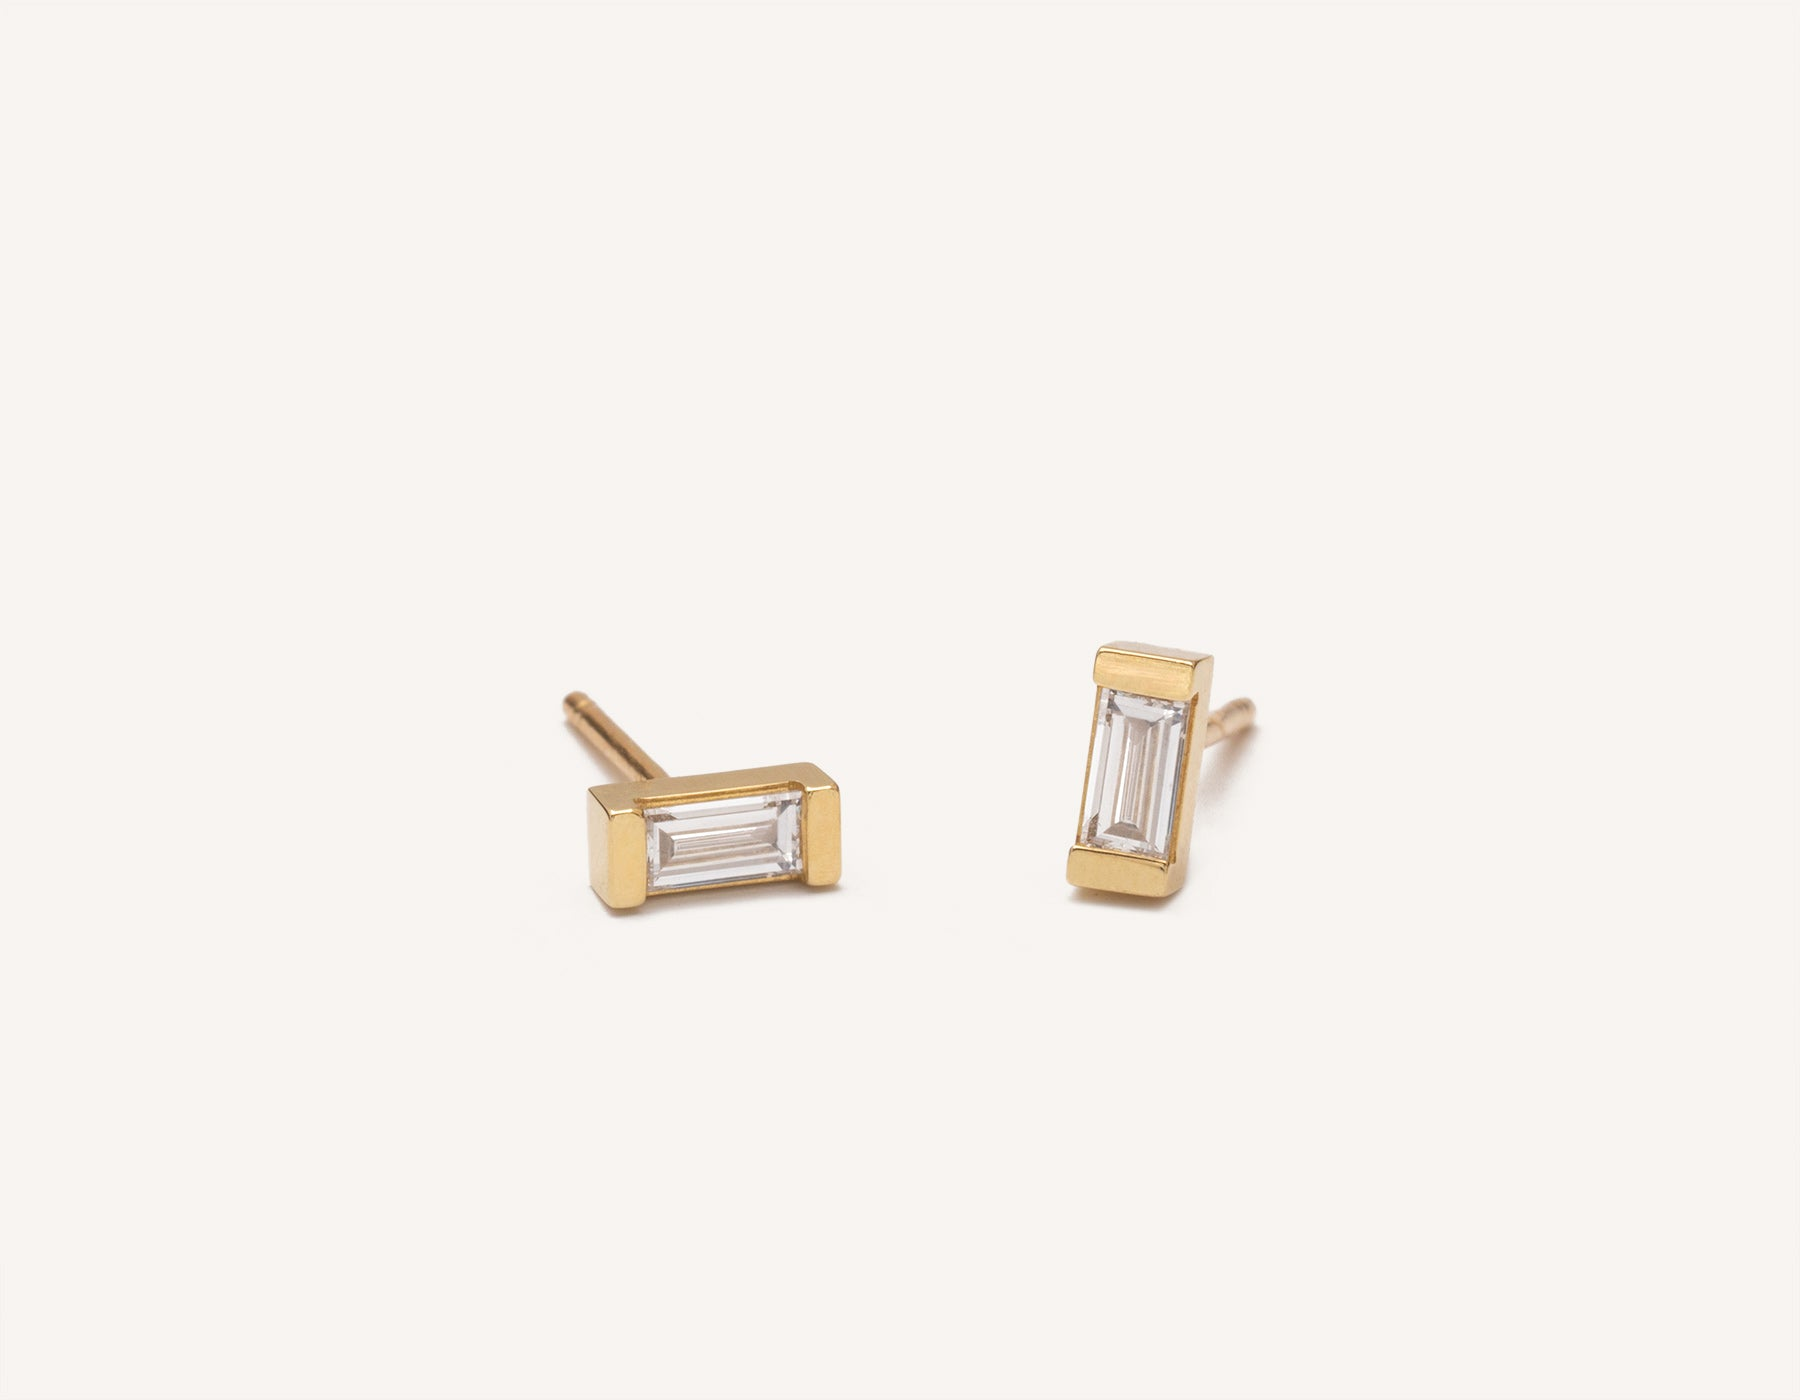 Simple elegant studs 14k solid gold Baguette Diamond Earrings from Vrai and Oro in a channel setting with a post backing,14K Yellow Gold